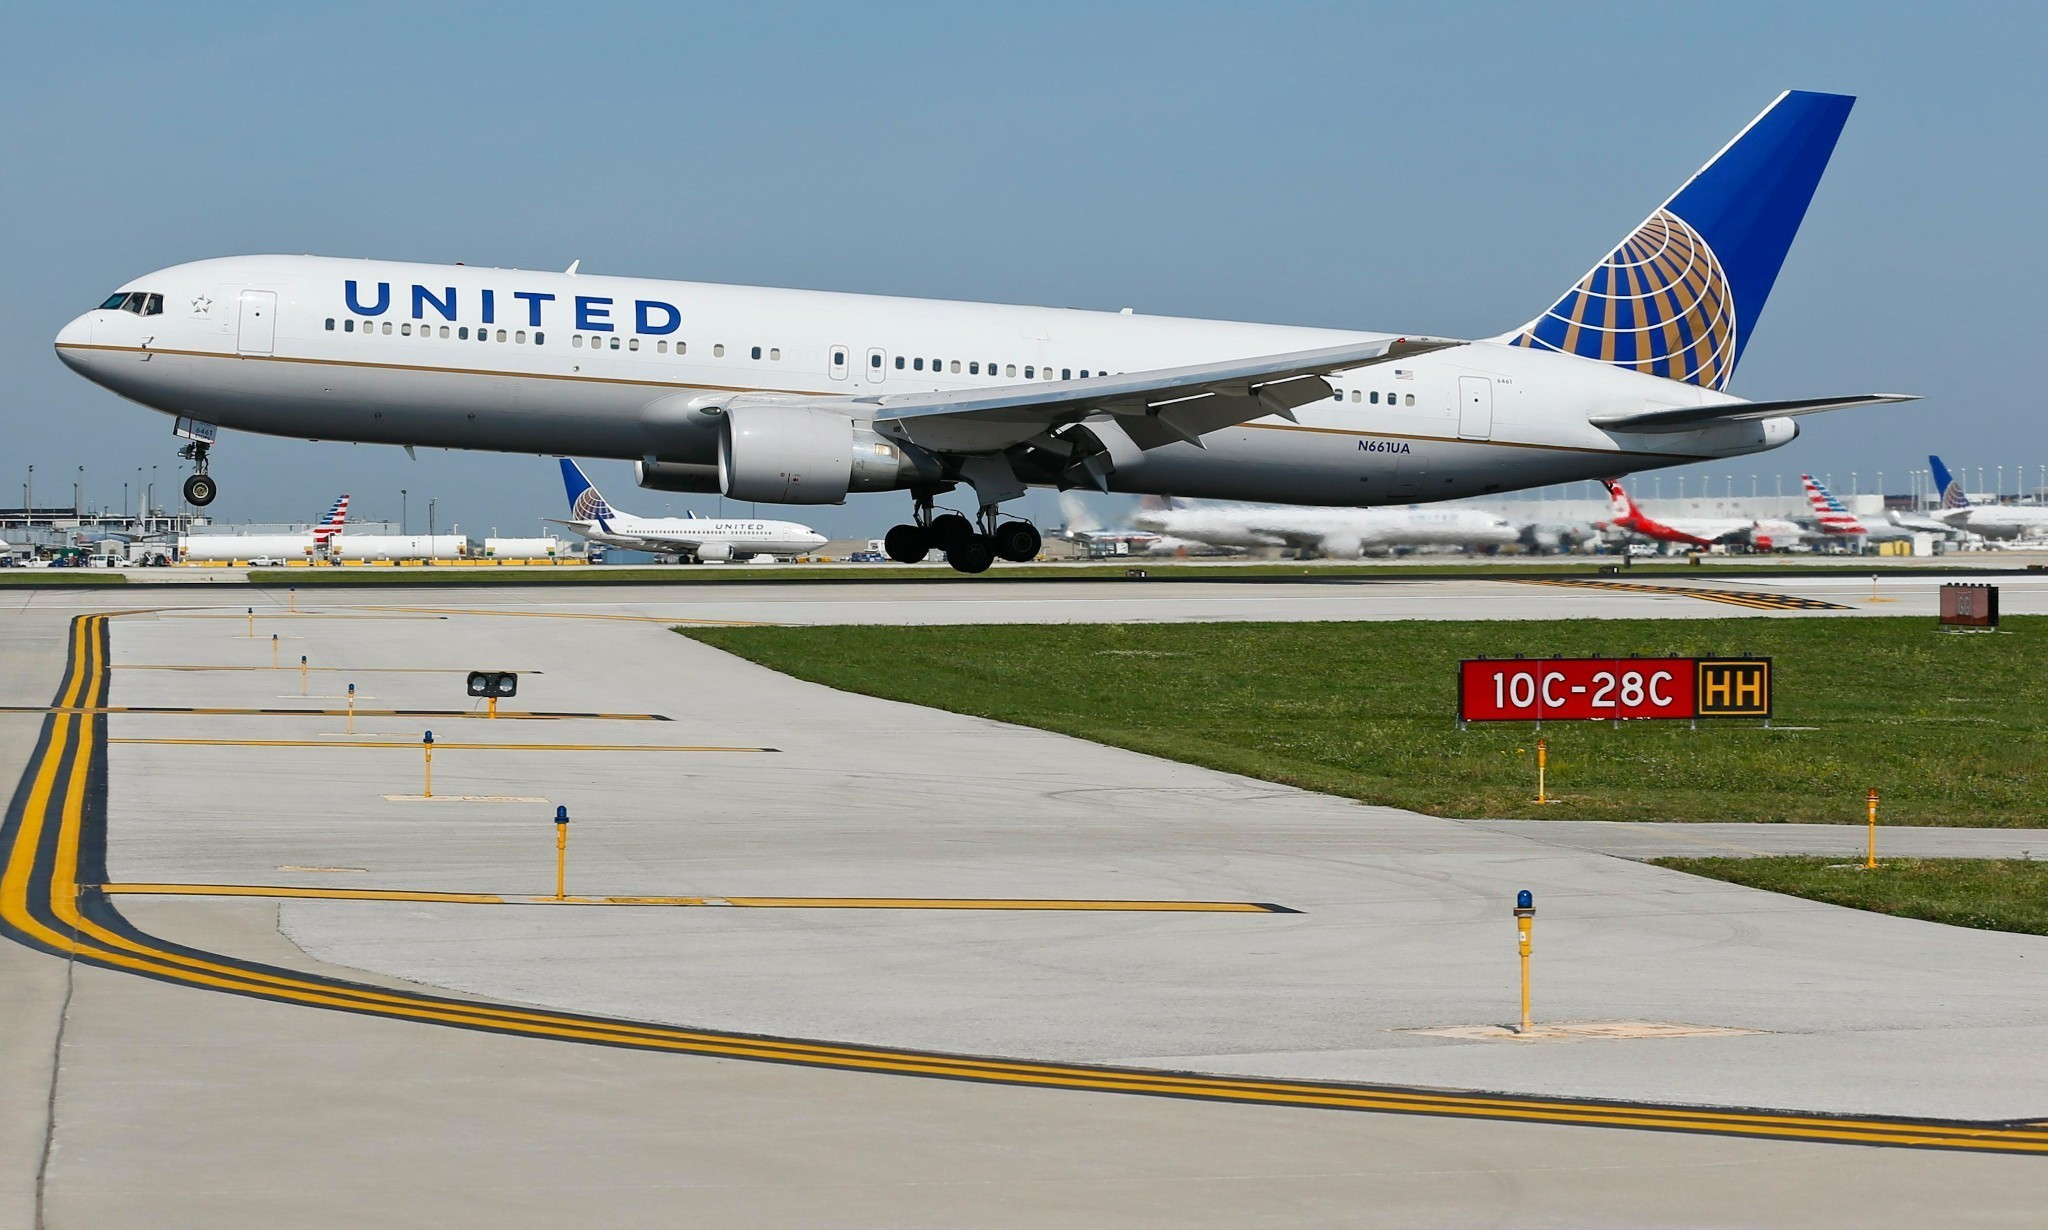 Dog dies on United Airlines flight after being forced into overhead locker